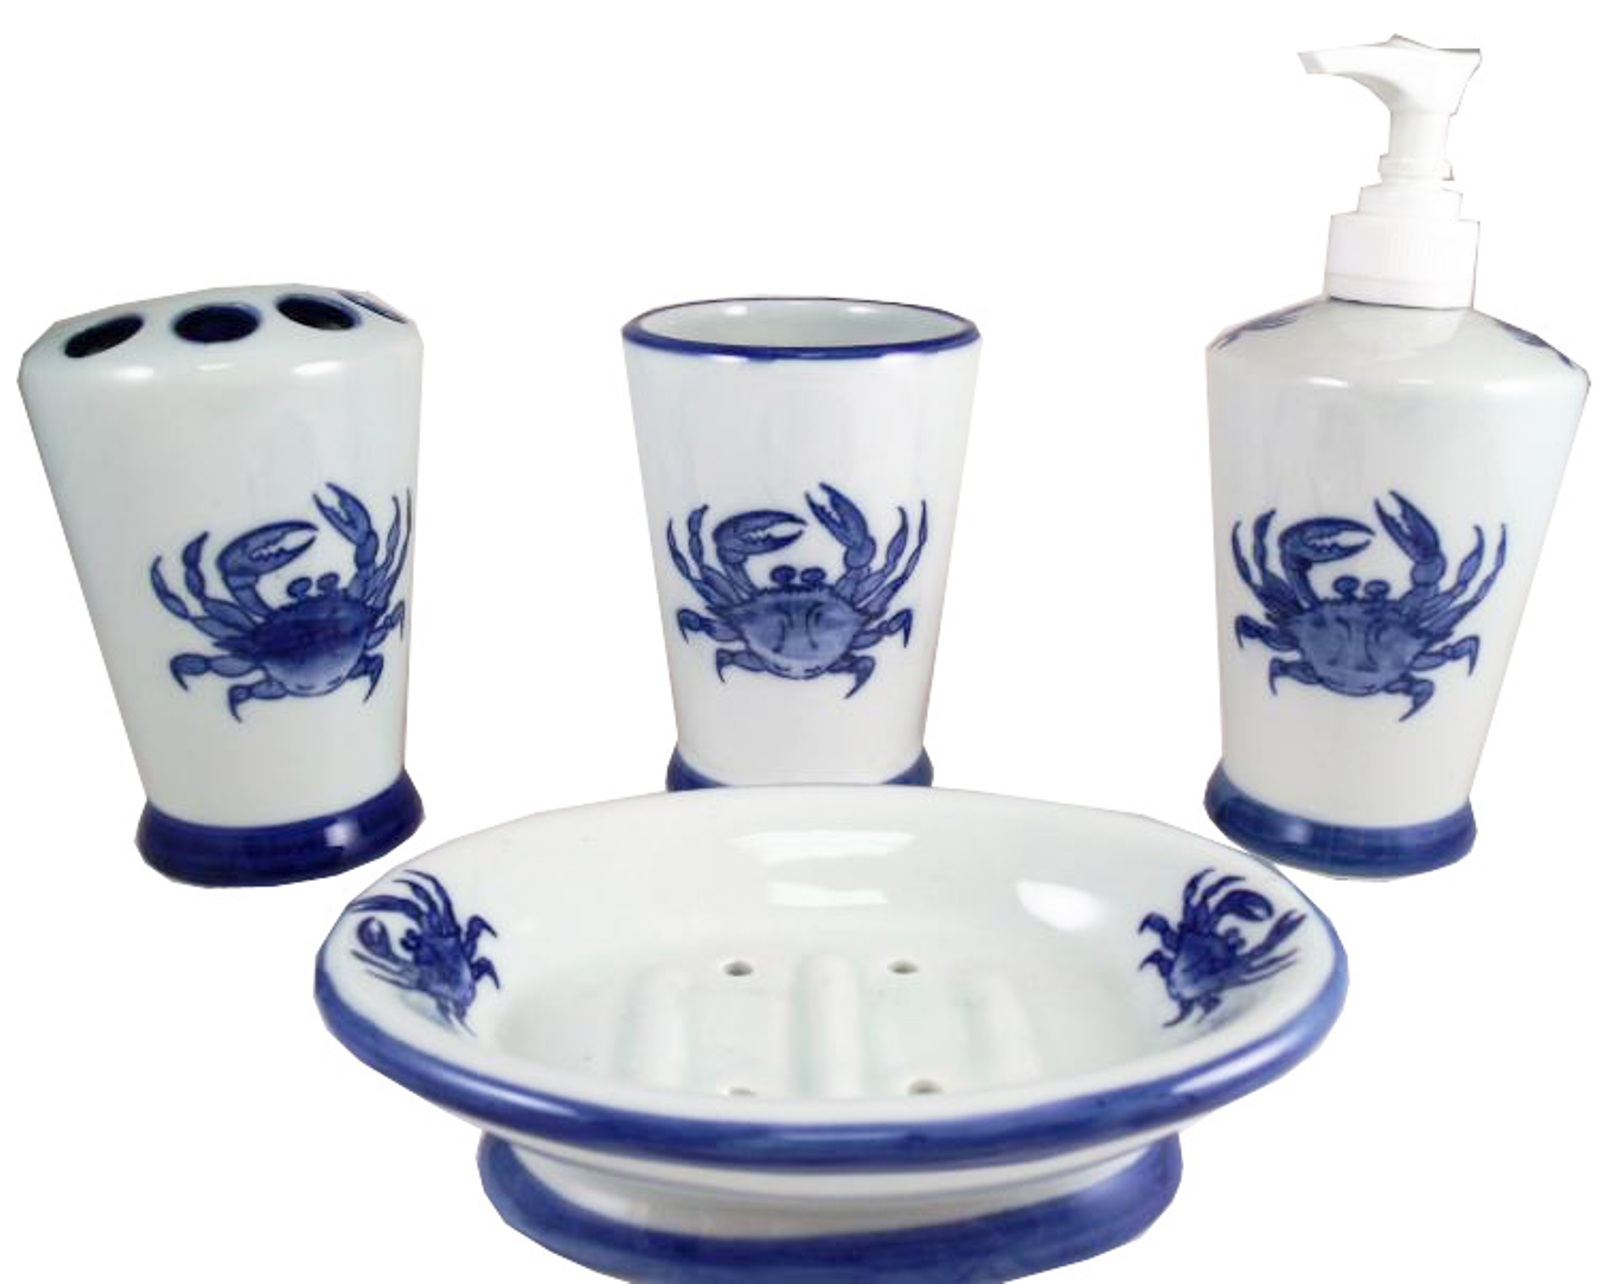 About Chesapeake Bay Maryland Blue Crab Vanity Bathroom Accessory Set